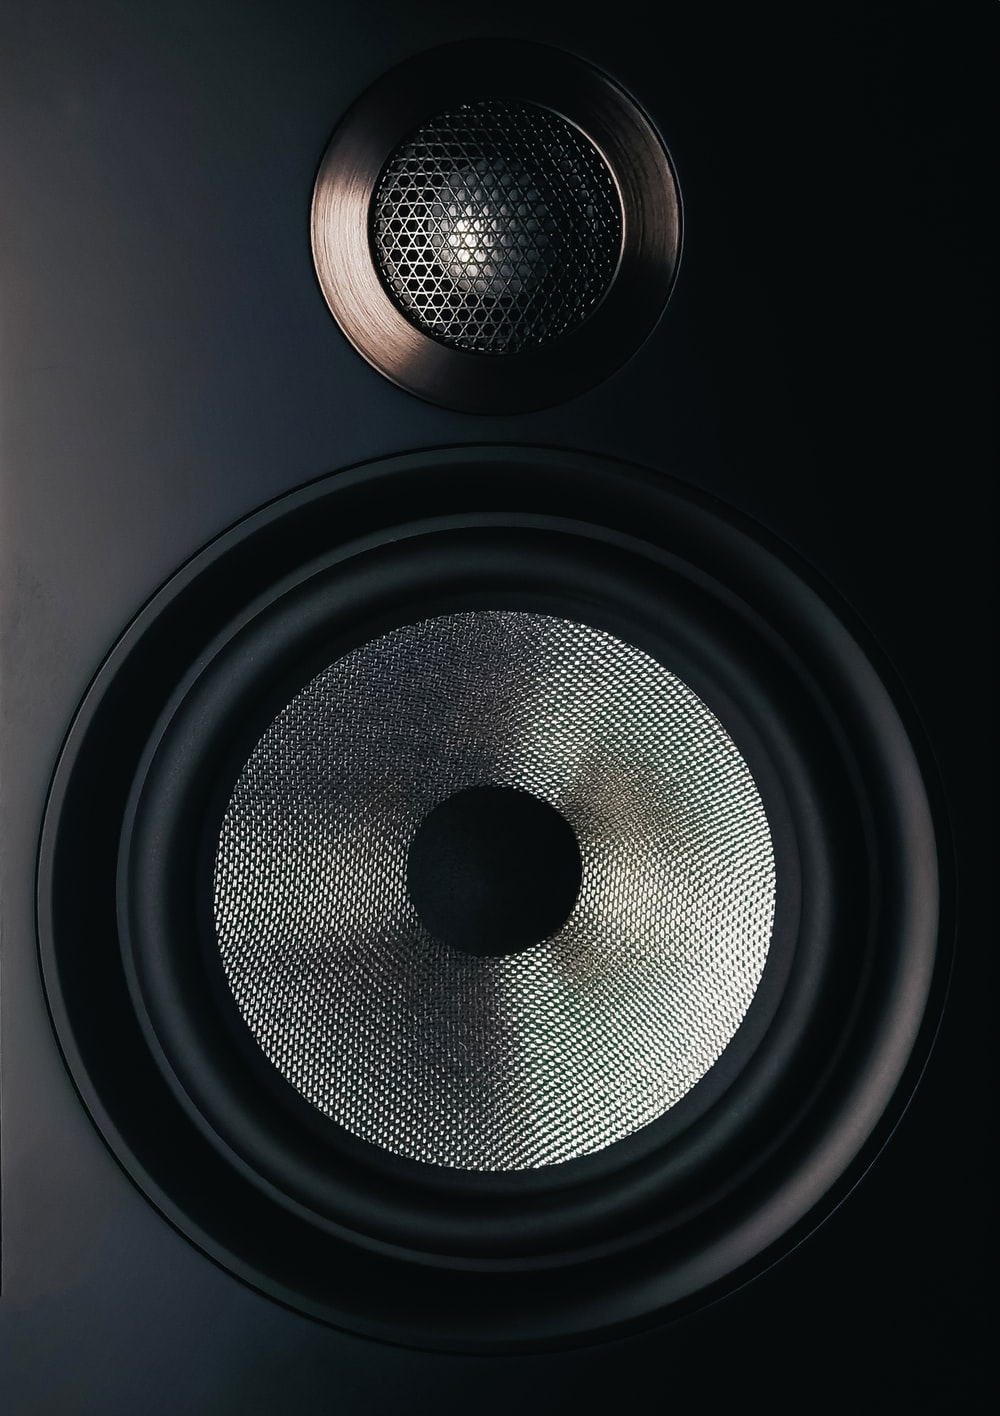 black and gray speaker on brown wooden table